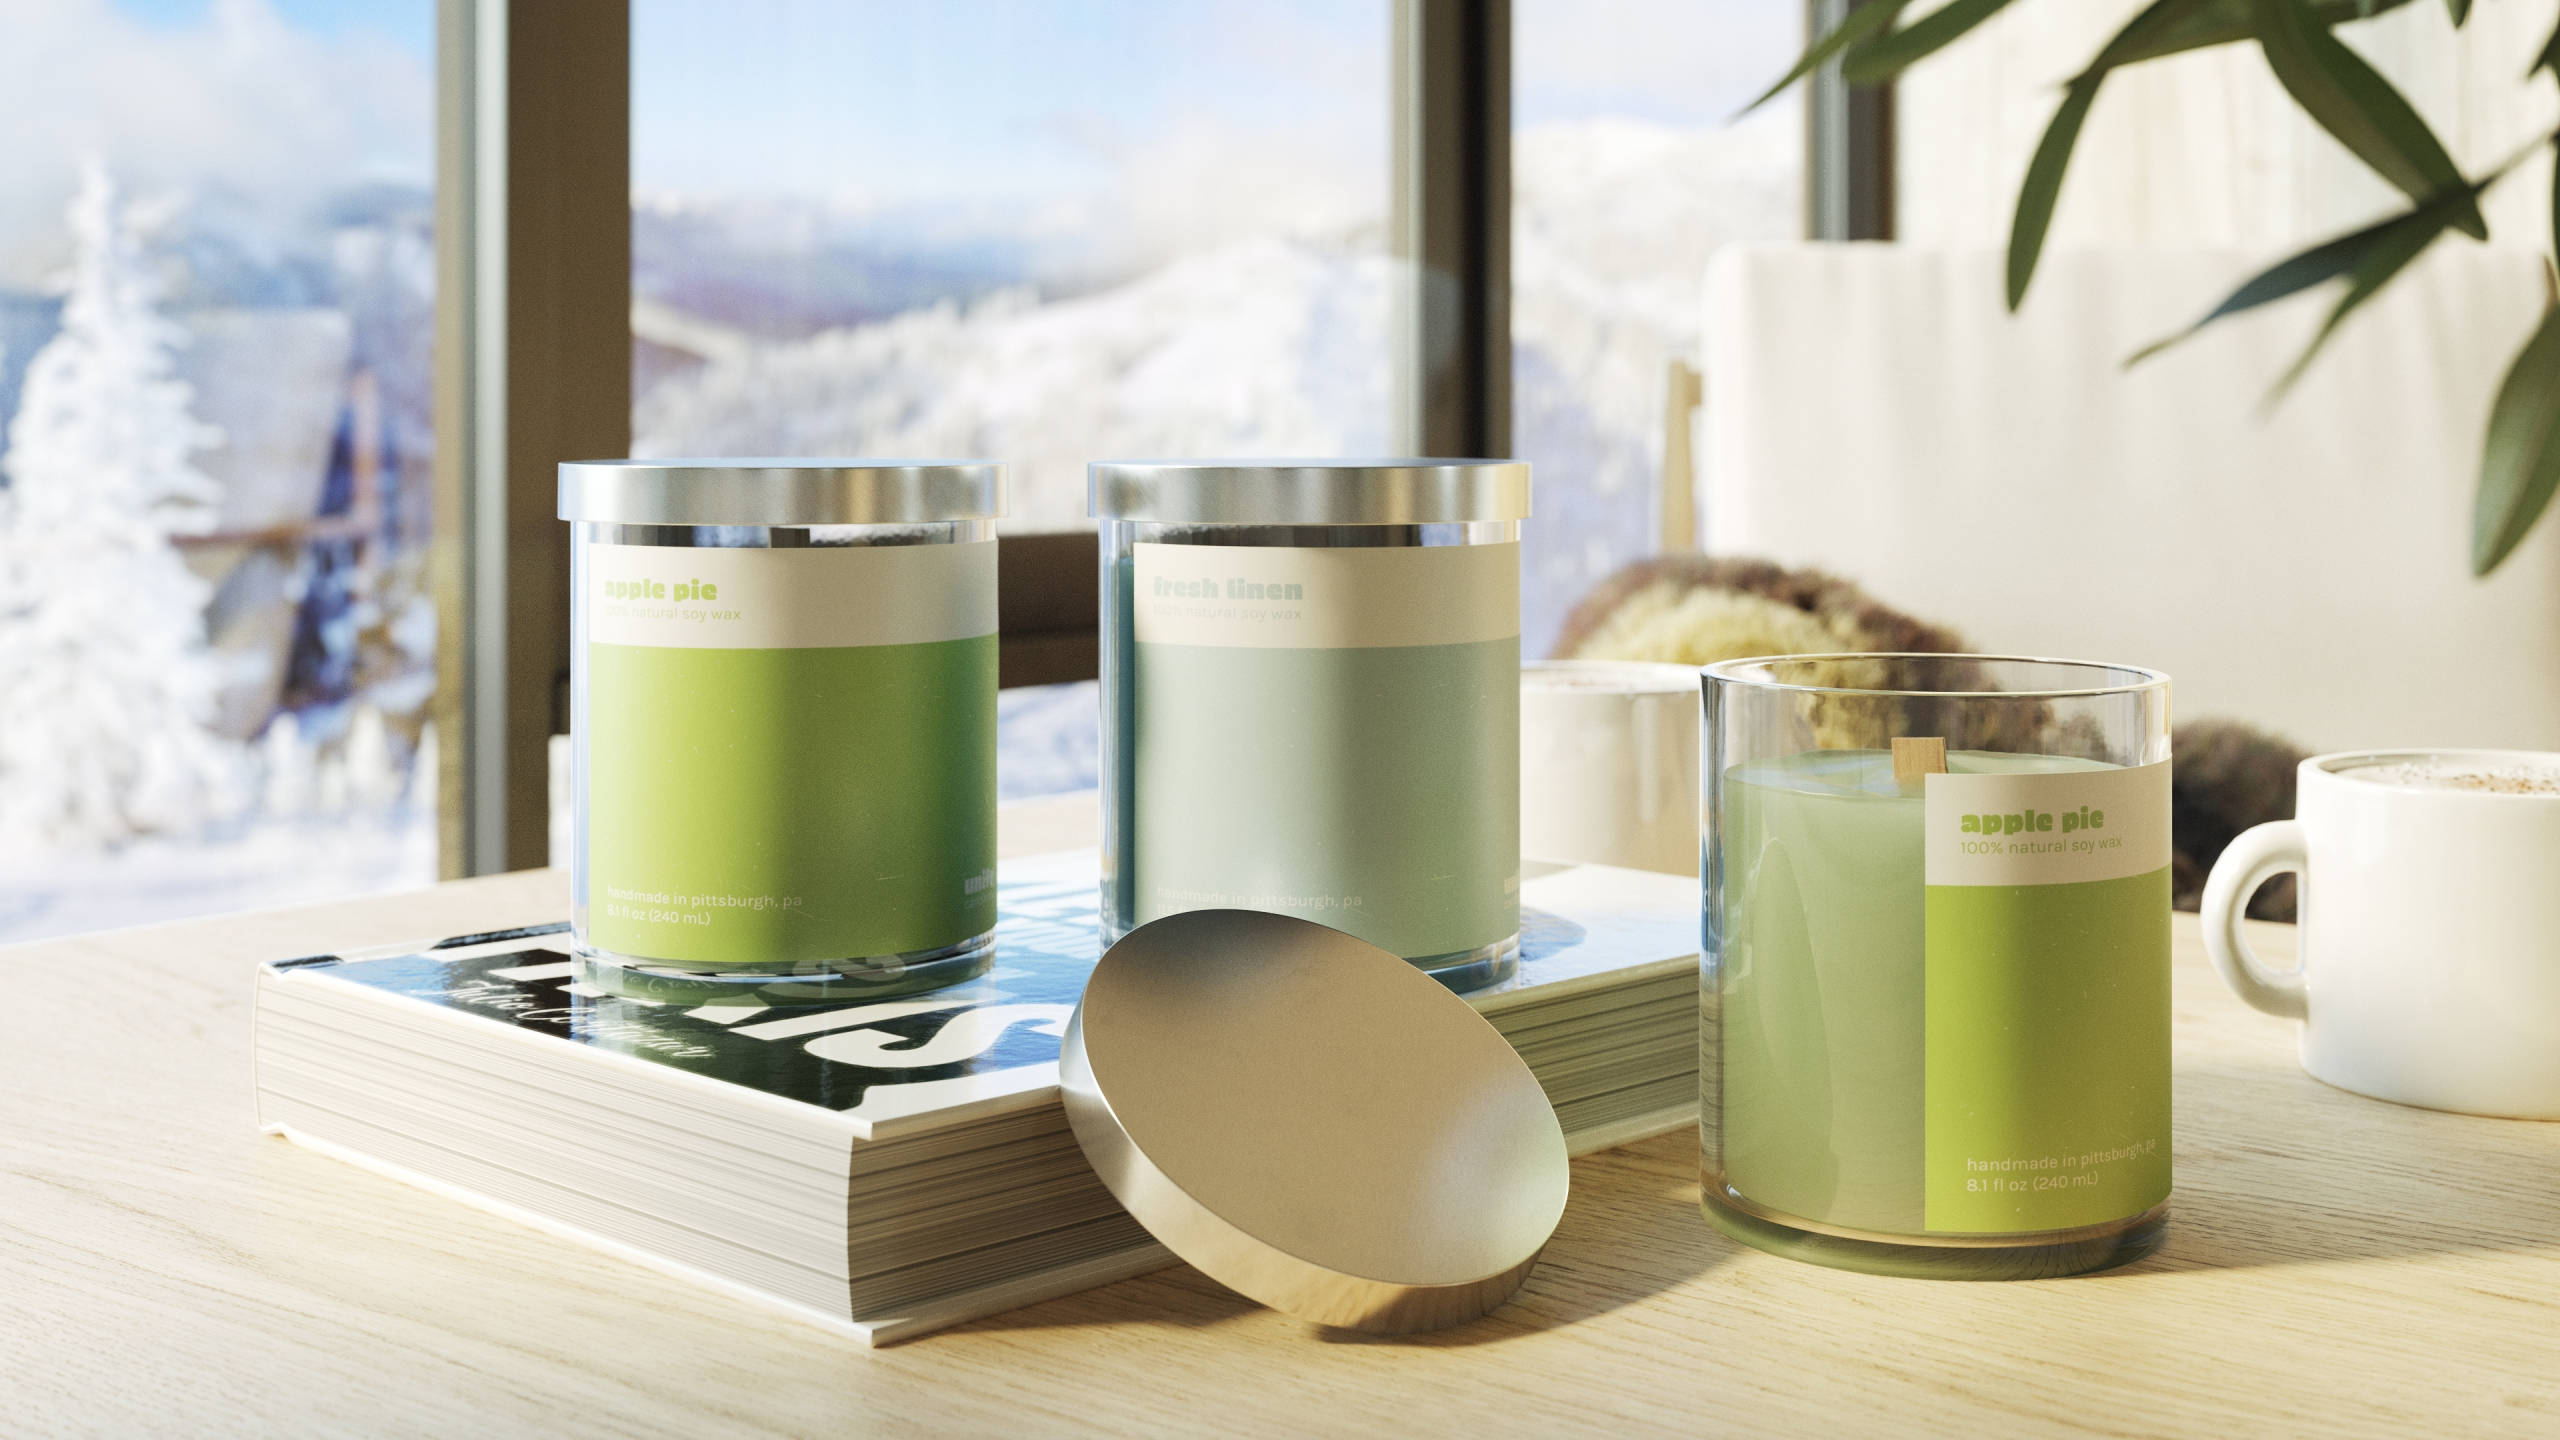 High-Quality 3D Visualization for Candle Products